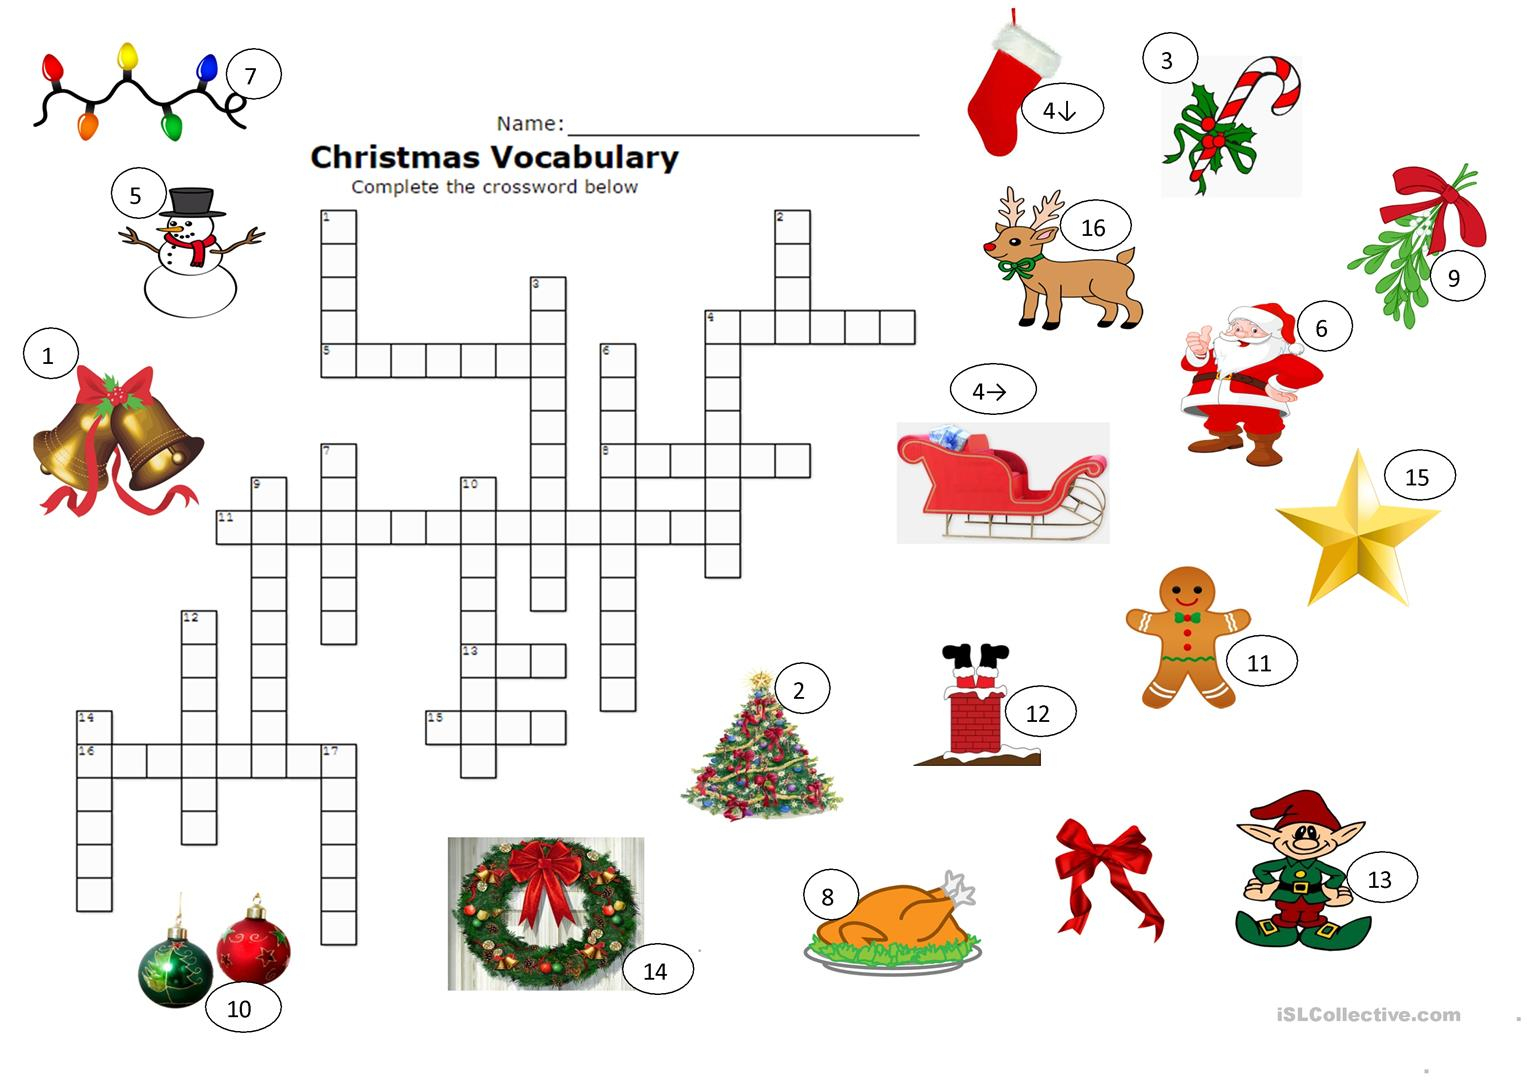 Christmas Crossword Worksheet - Free Esl Printable Worksheets Made - Free Printable Xmas Crossword